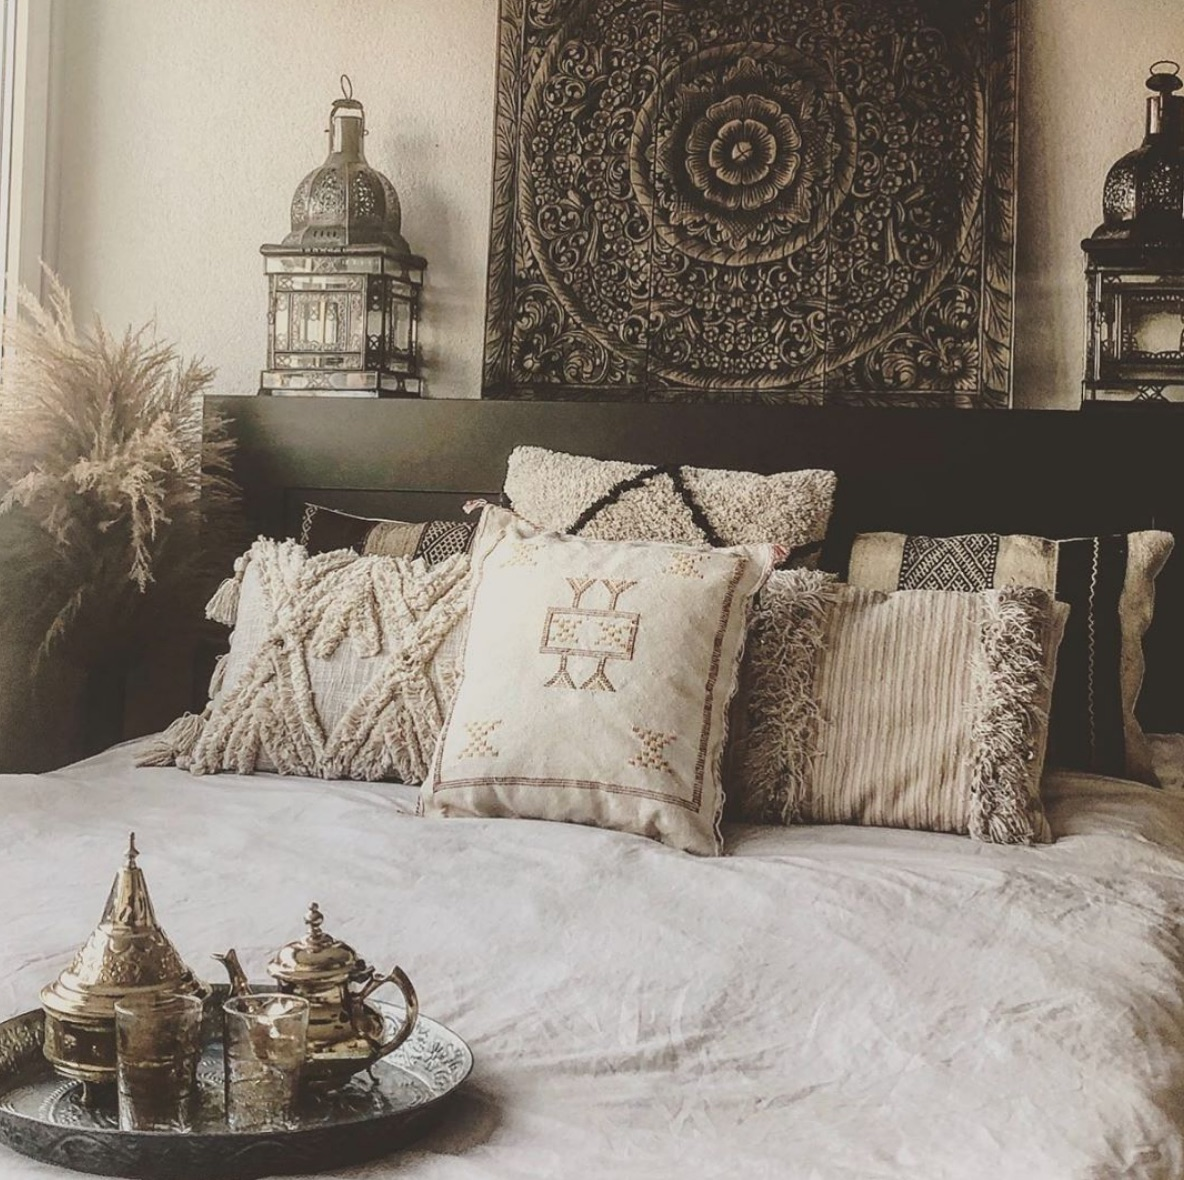 Dark moroccan bedroom